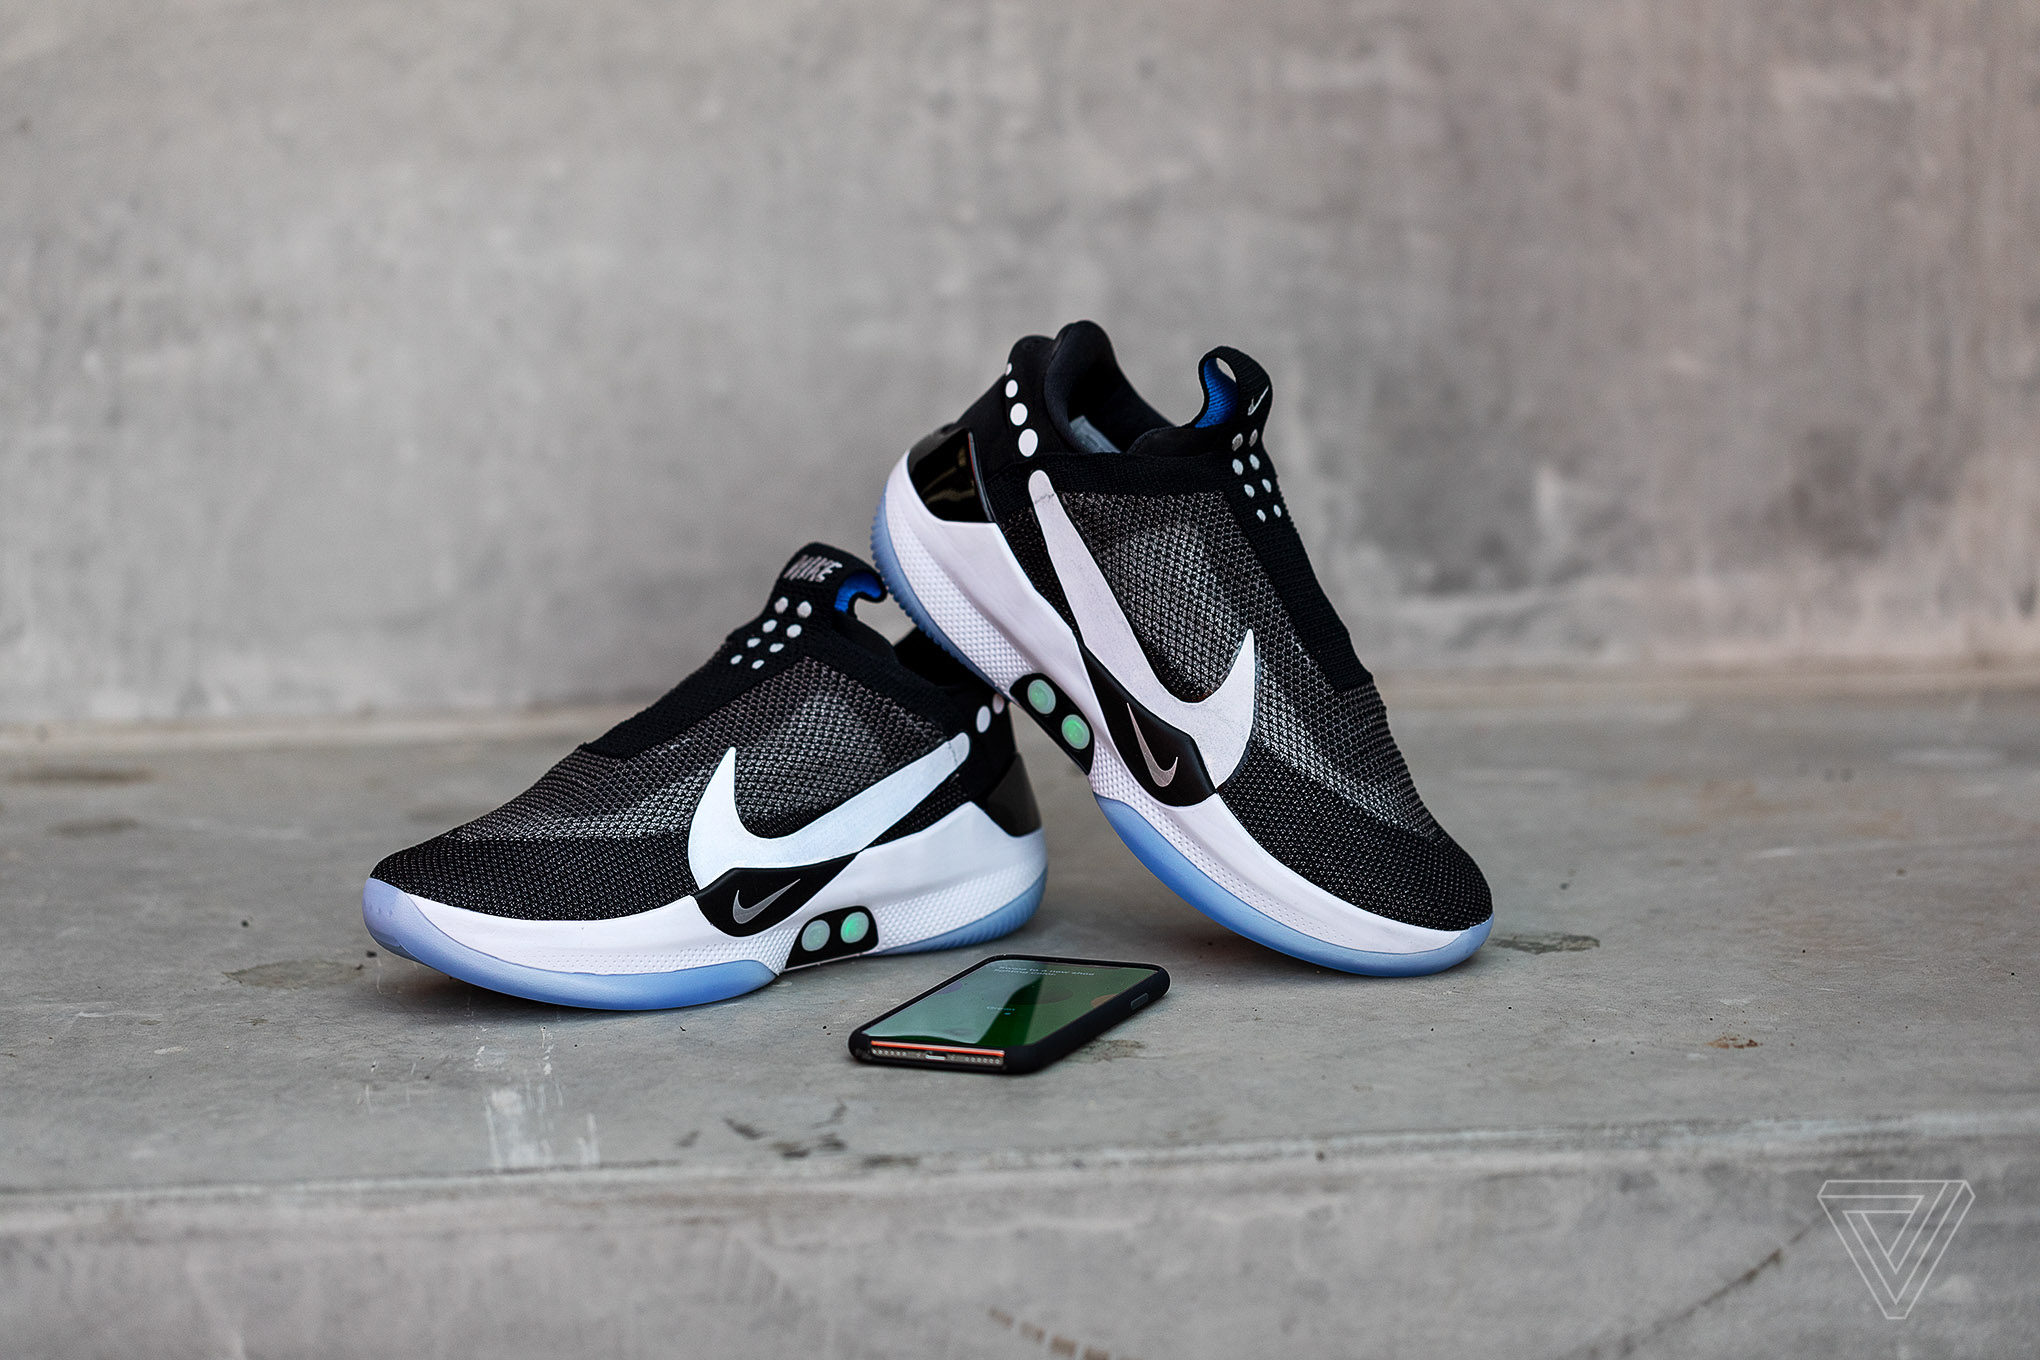 ddc389ffdb70 Nike s Adapt BB self-lacing sneakers let you tie your shoes from an ...